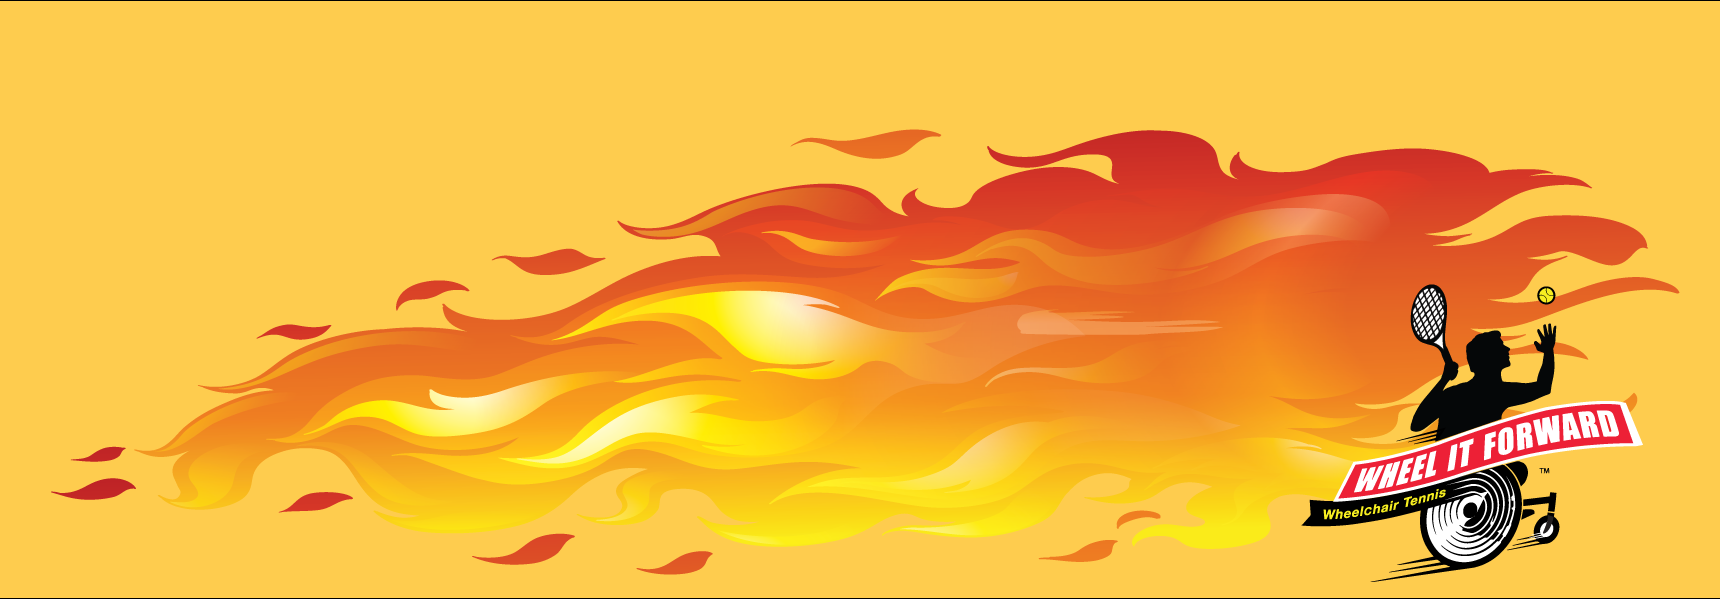 Graphic of Wheel it Forward logo on bright backgroud with flames